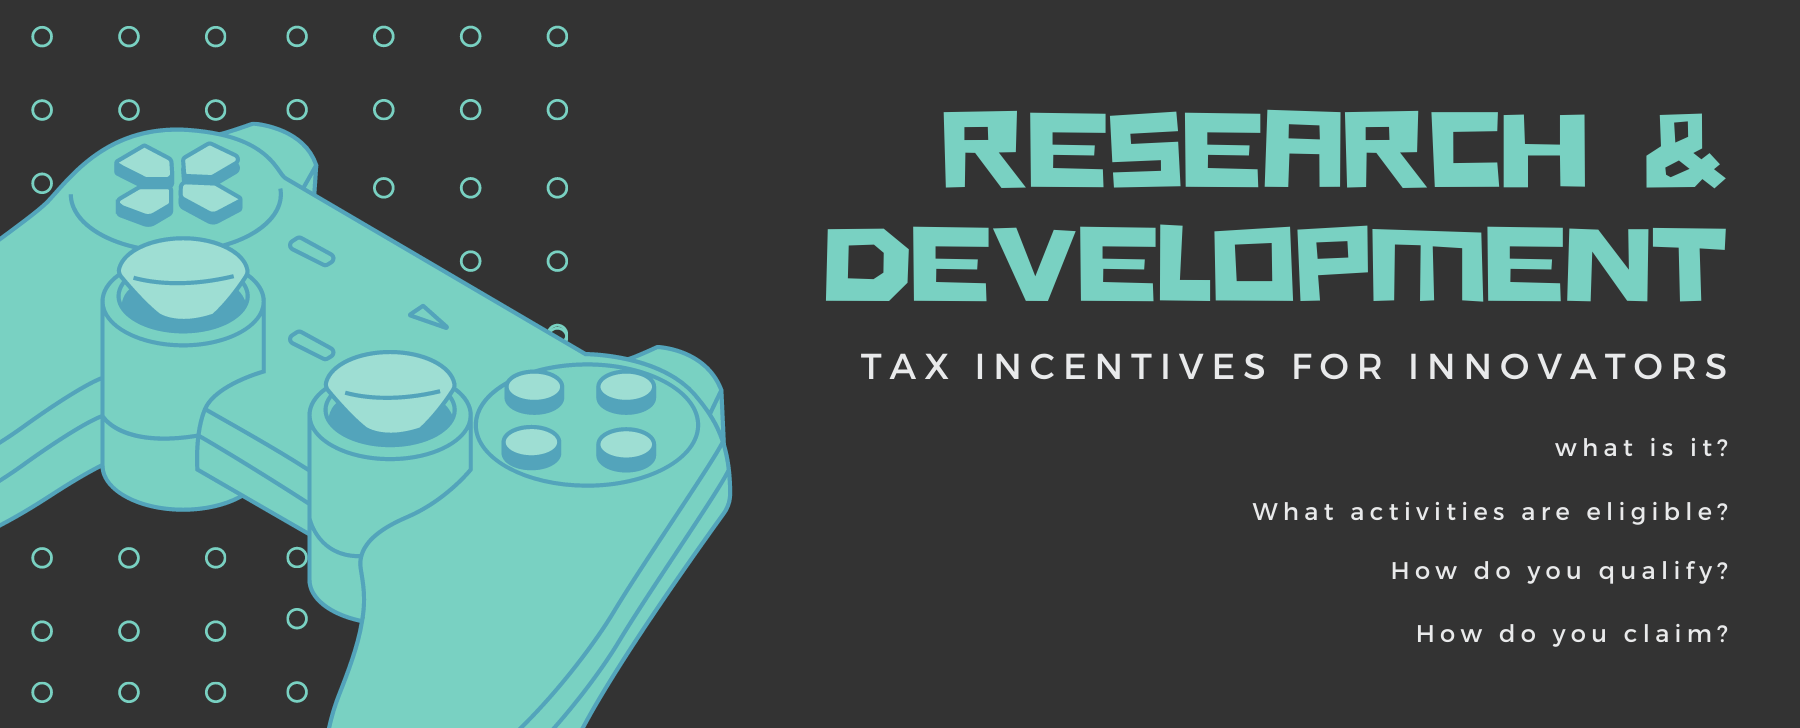 research and development tax incentives